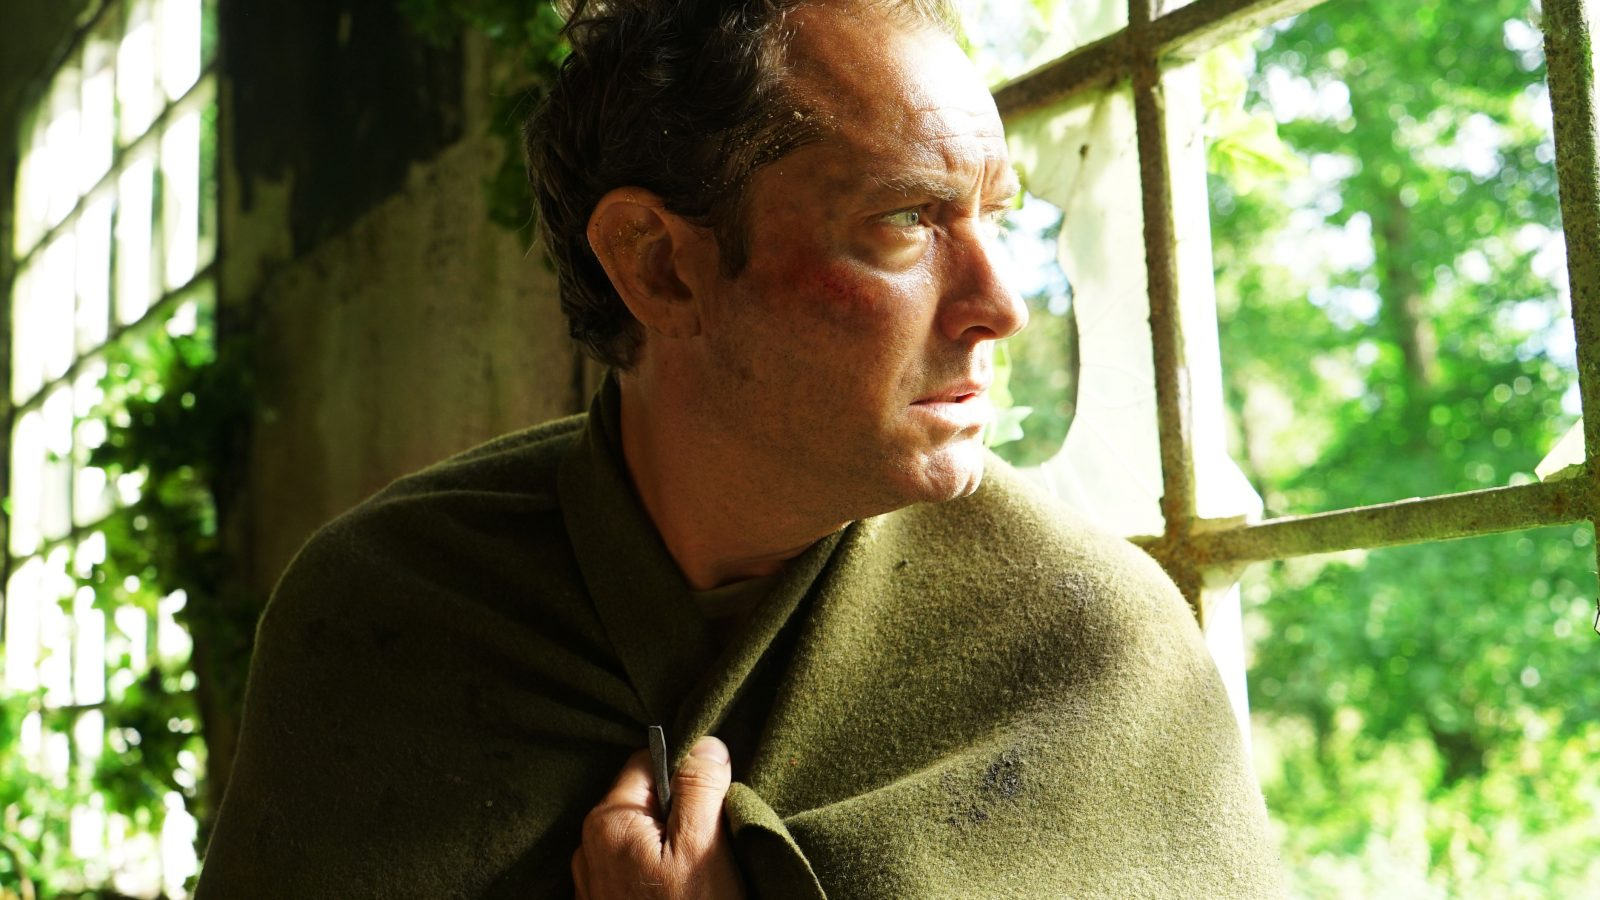 Jude Law wrapped in a green blanket staring out of a window with a frightened look on his face. Part of The Third Day TV series.